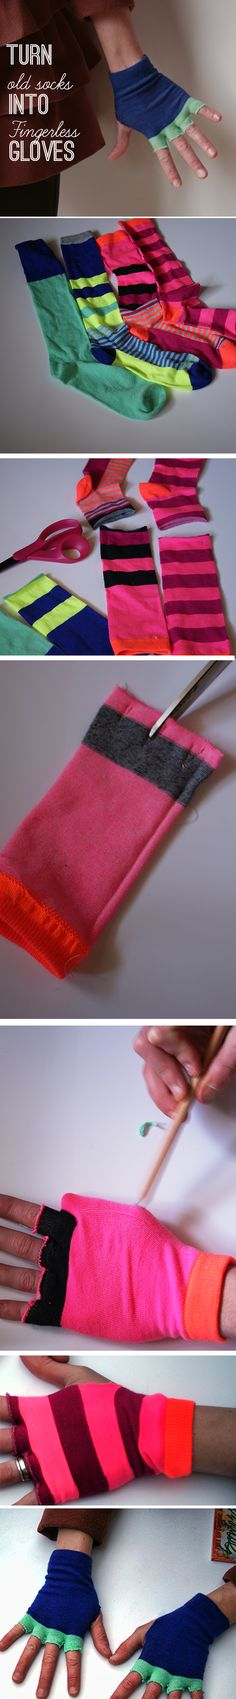 Upcycle old socks to fingerless gloves in this EASY diy Encore un autre tuto sur les chaussettes transfo en mitaines ; Sewing Hacks, Sewing Crafts, Fun Crafts, Diy And Crafts, Sock Crafts, Creative Crafts, Alter Pullover, Craft Projects, Sewing Projects